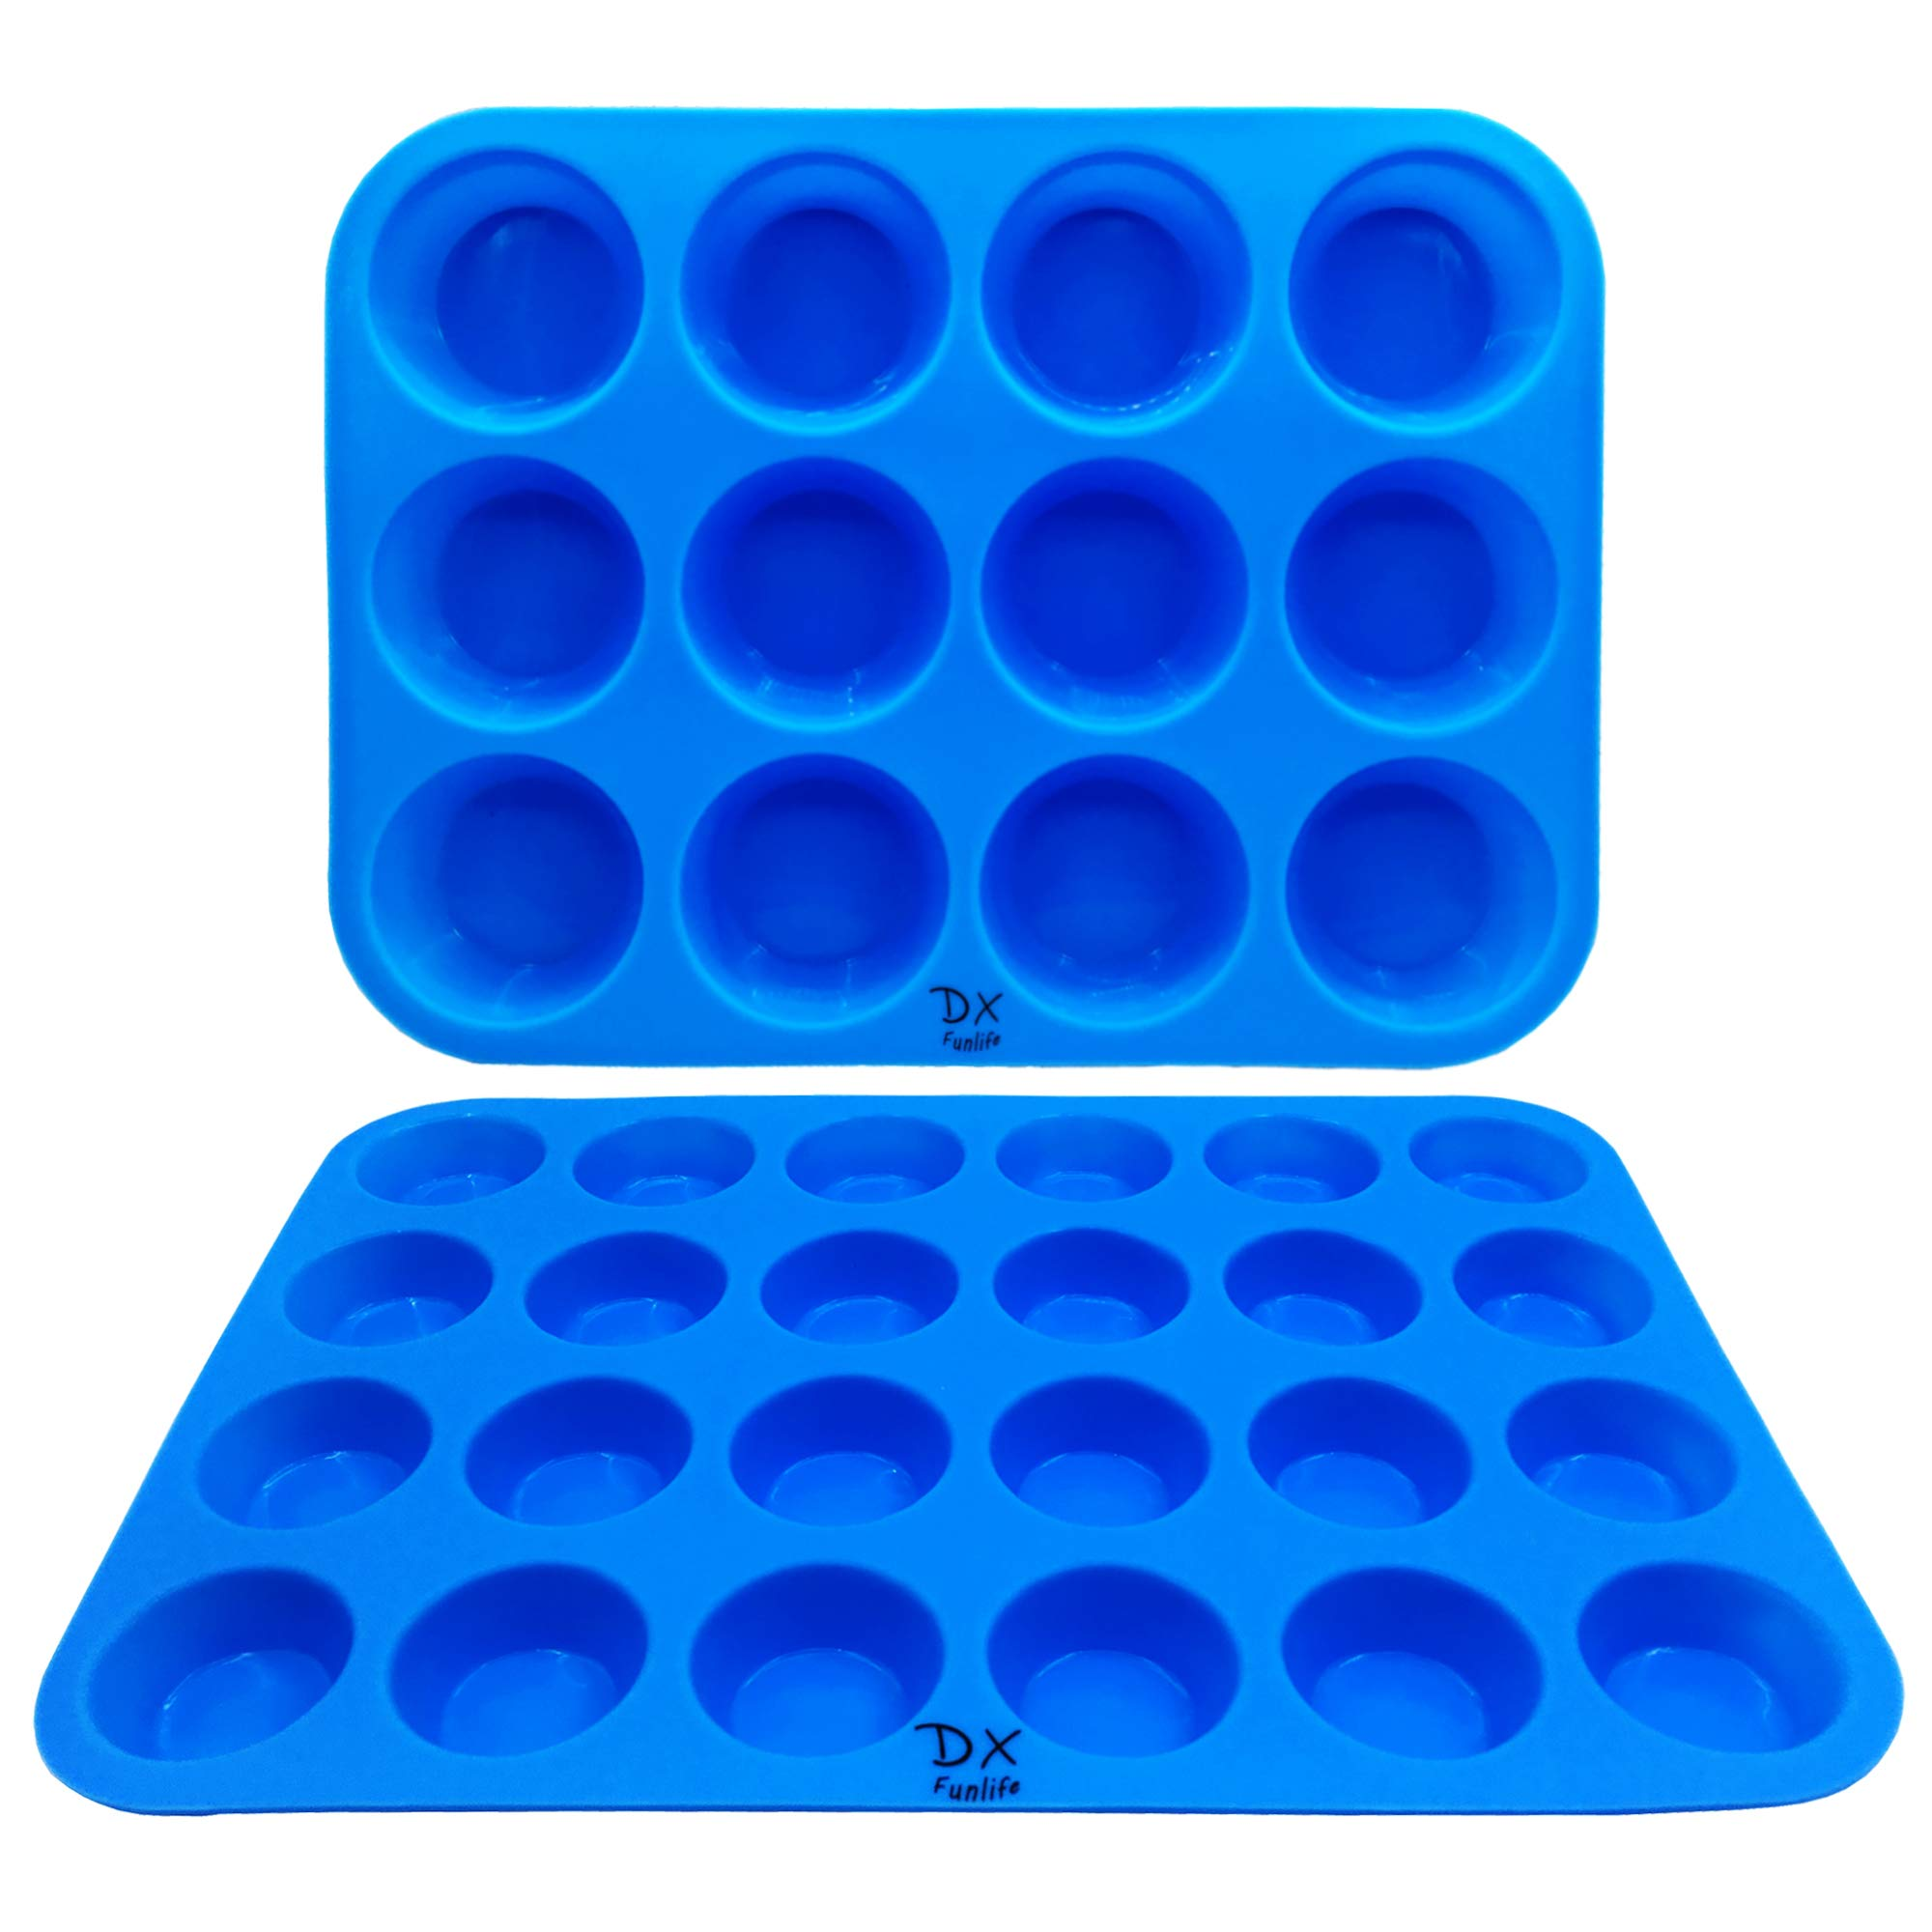 DX Funlife Silicone Muffin Pan Cupcake Baking Cups Cake Molds Cake Maker Bakeware Tray Non Stick Pans Easy To Clean (Large 12 Cups and Mini 24 Cups) Set of 2 Sky Blue